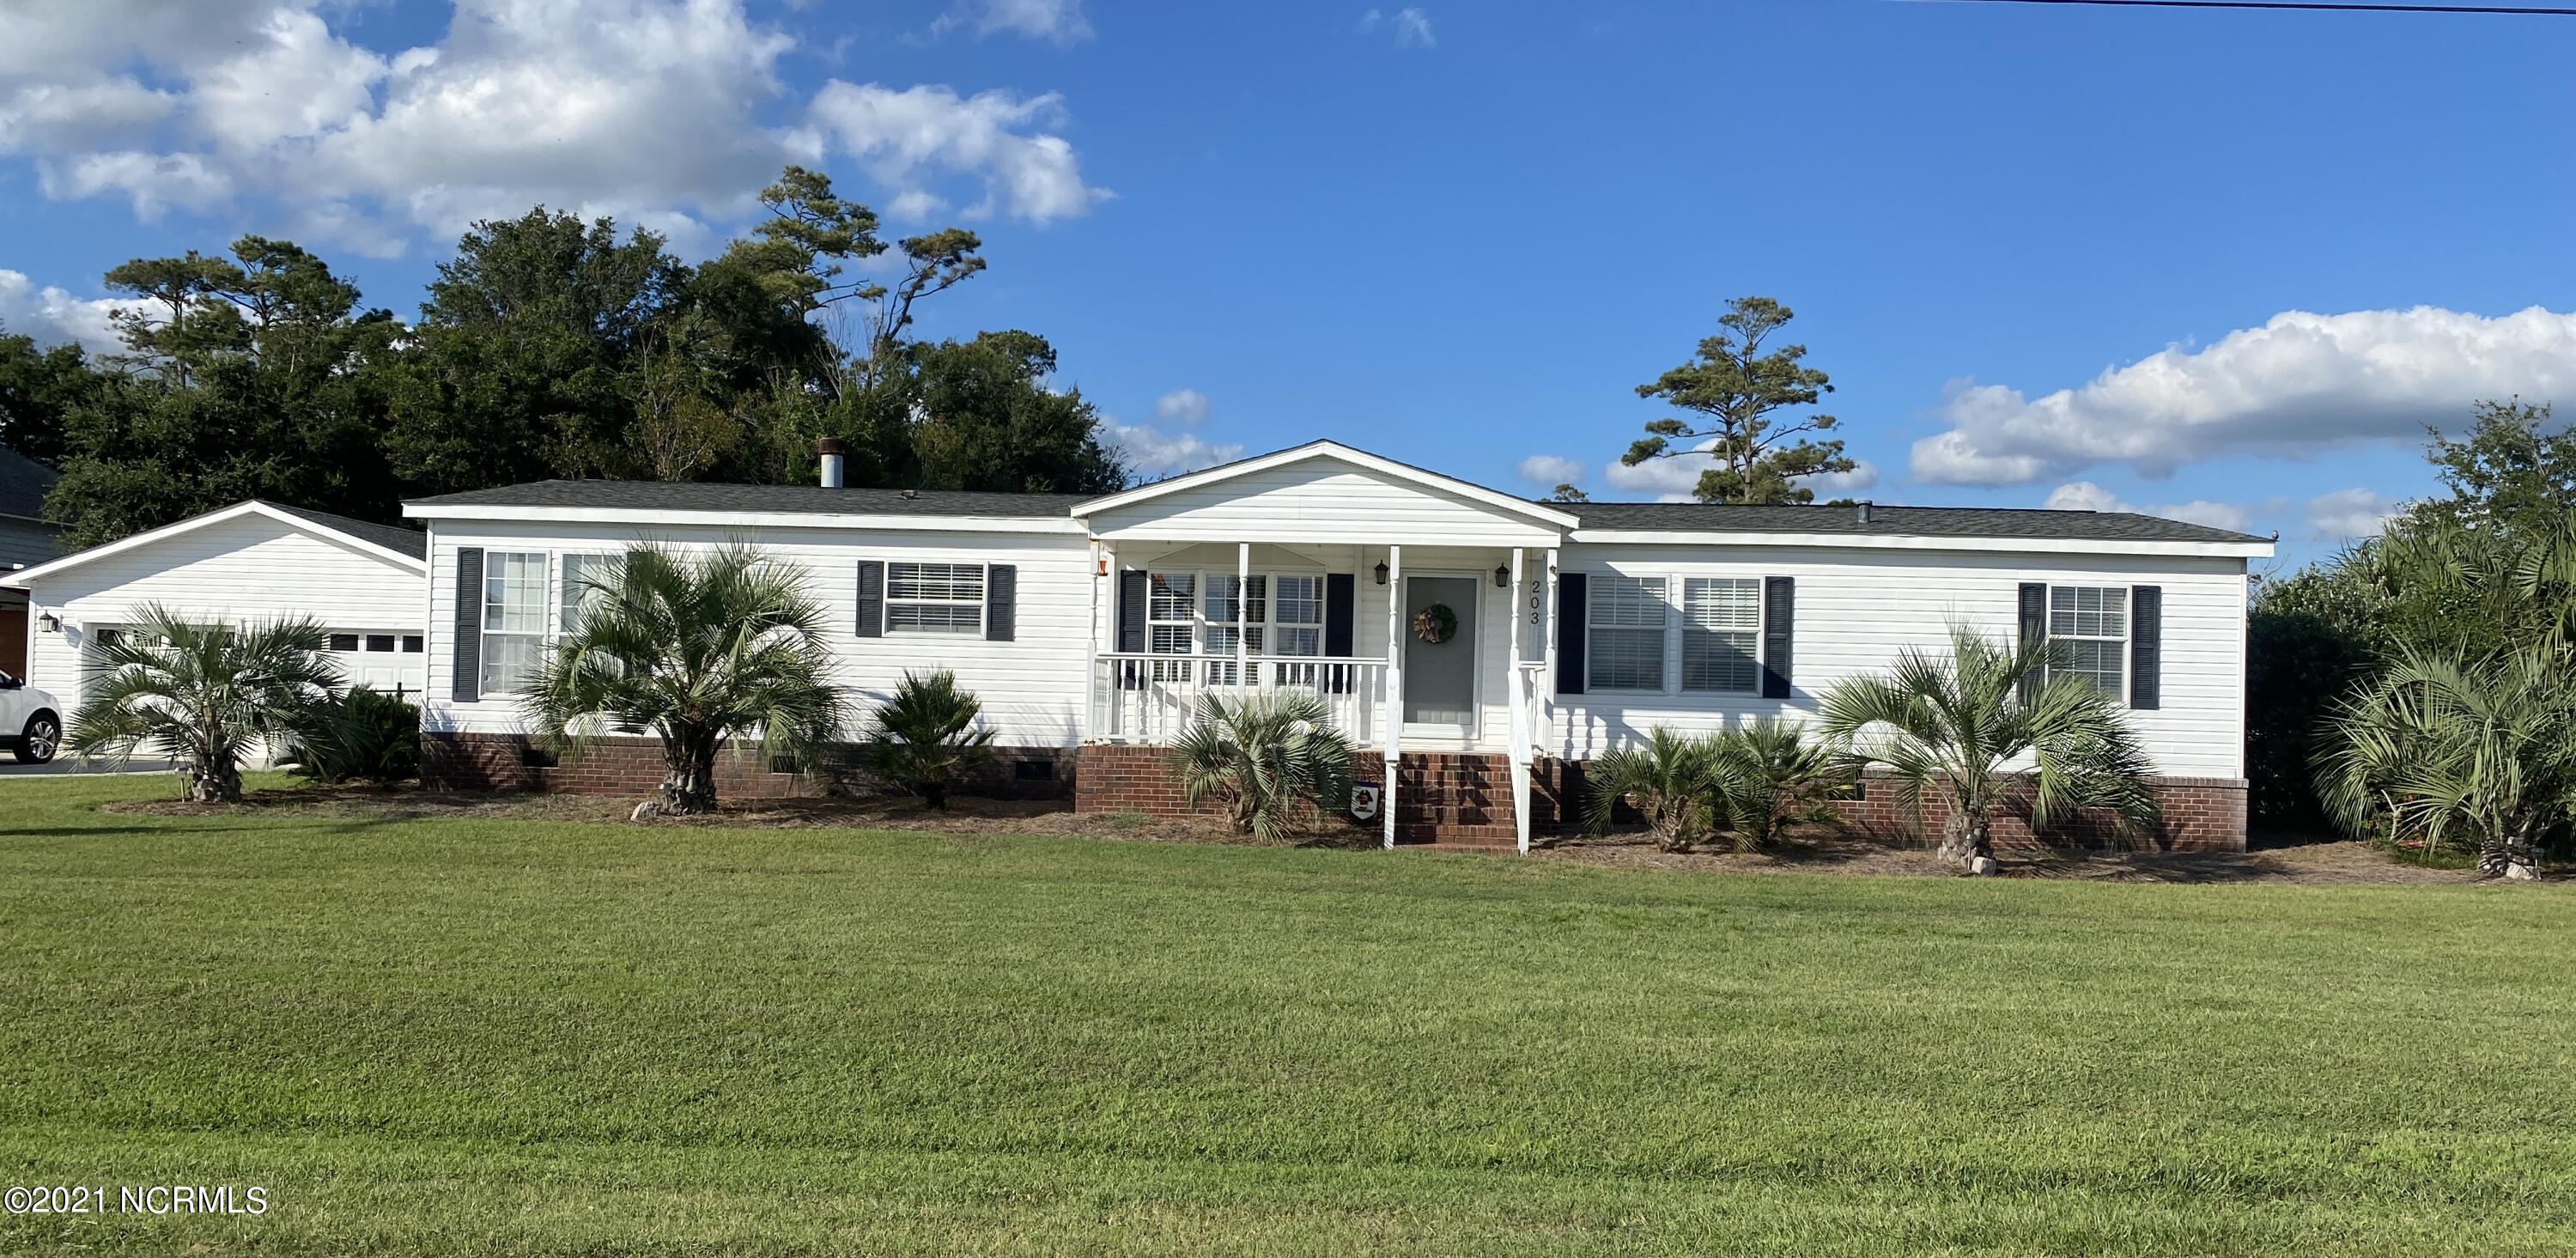 Oh my, Honey Stop the Car!! Enjoy living in Carteret County with water views and affordable. Live in the highly sought-after area of Bayshore Park. This home is located just a block from the community boat ramp (membership required to use).  The home is a 3-bedroom, 2 bath with new, within the last year, luxury vinyl flooring.  Gas logs for those cool coastal nights. The home features two spacious living areas.  Large kitchen with granite countertops and breakfast bar. This property also has a 2-car detached garage and a backyard storage building.  The driveway offers plenty of room for your camper/RV and the property has a 220 plug.  Bring your boat on down to Cape Carteret and make this jewel your next beach home.  Located close to schools, restaurants, grocery stores, beaches. Call for an appointment today.